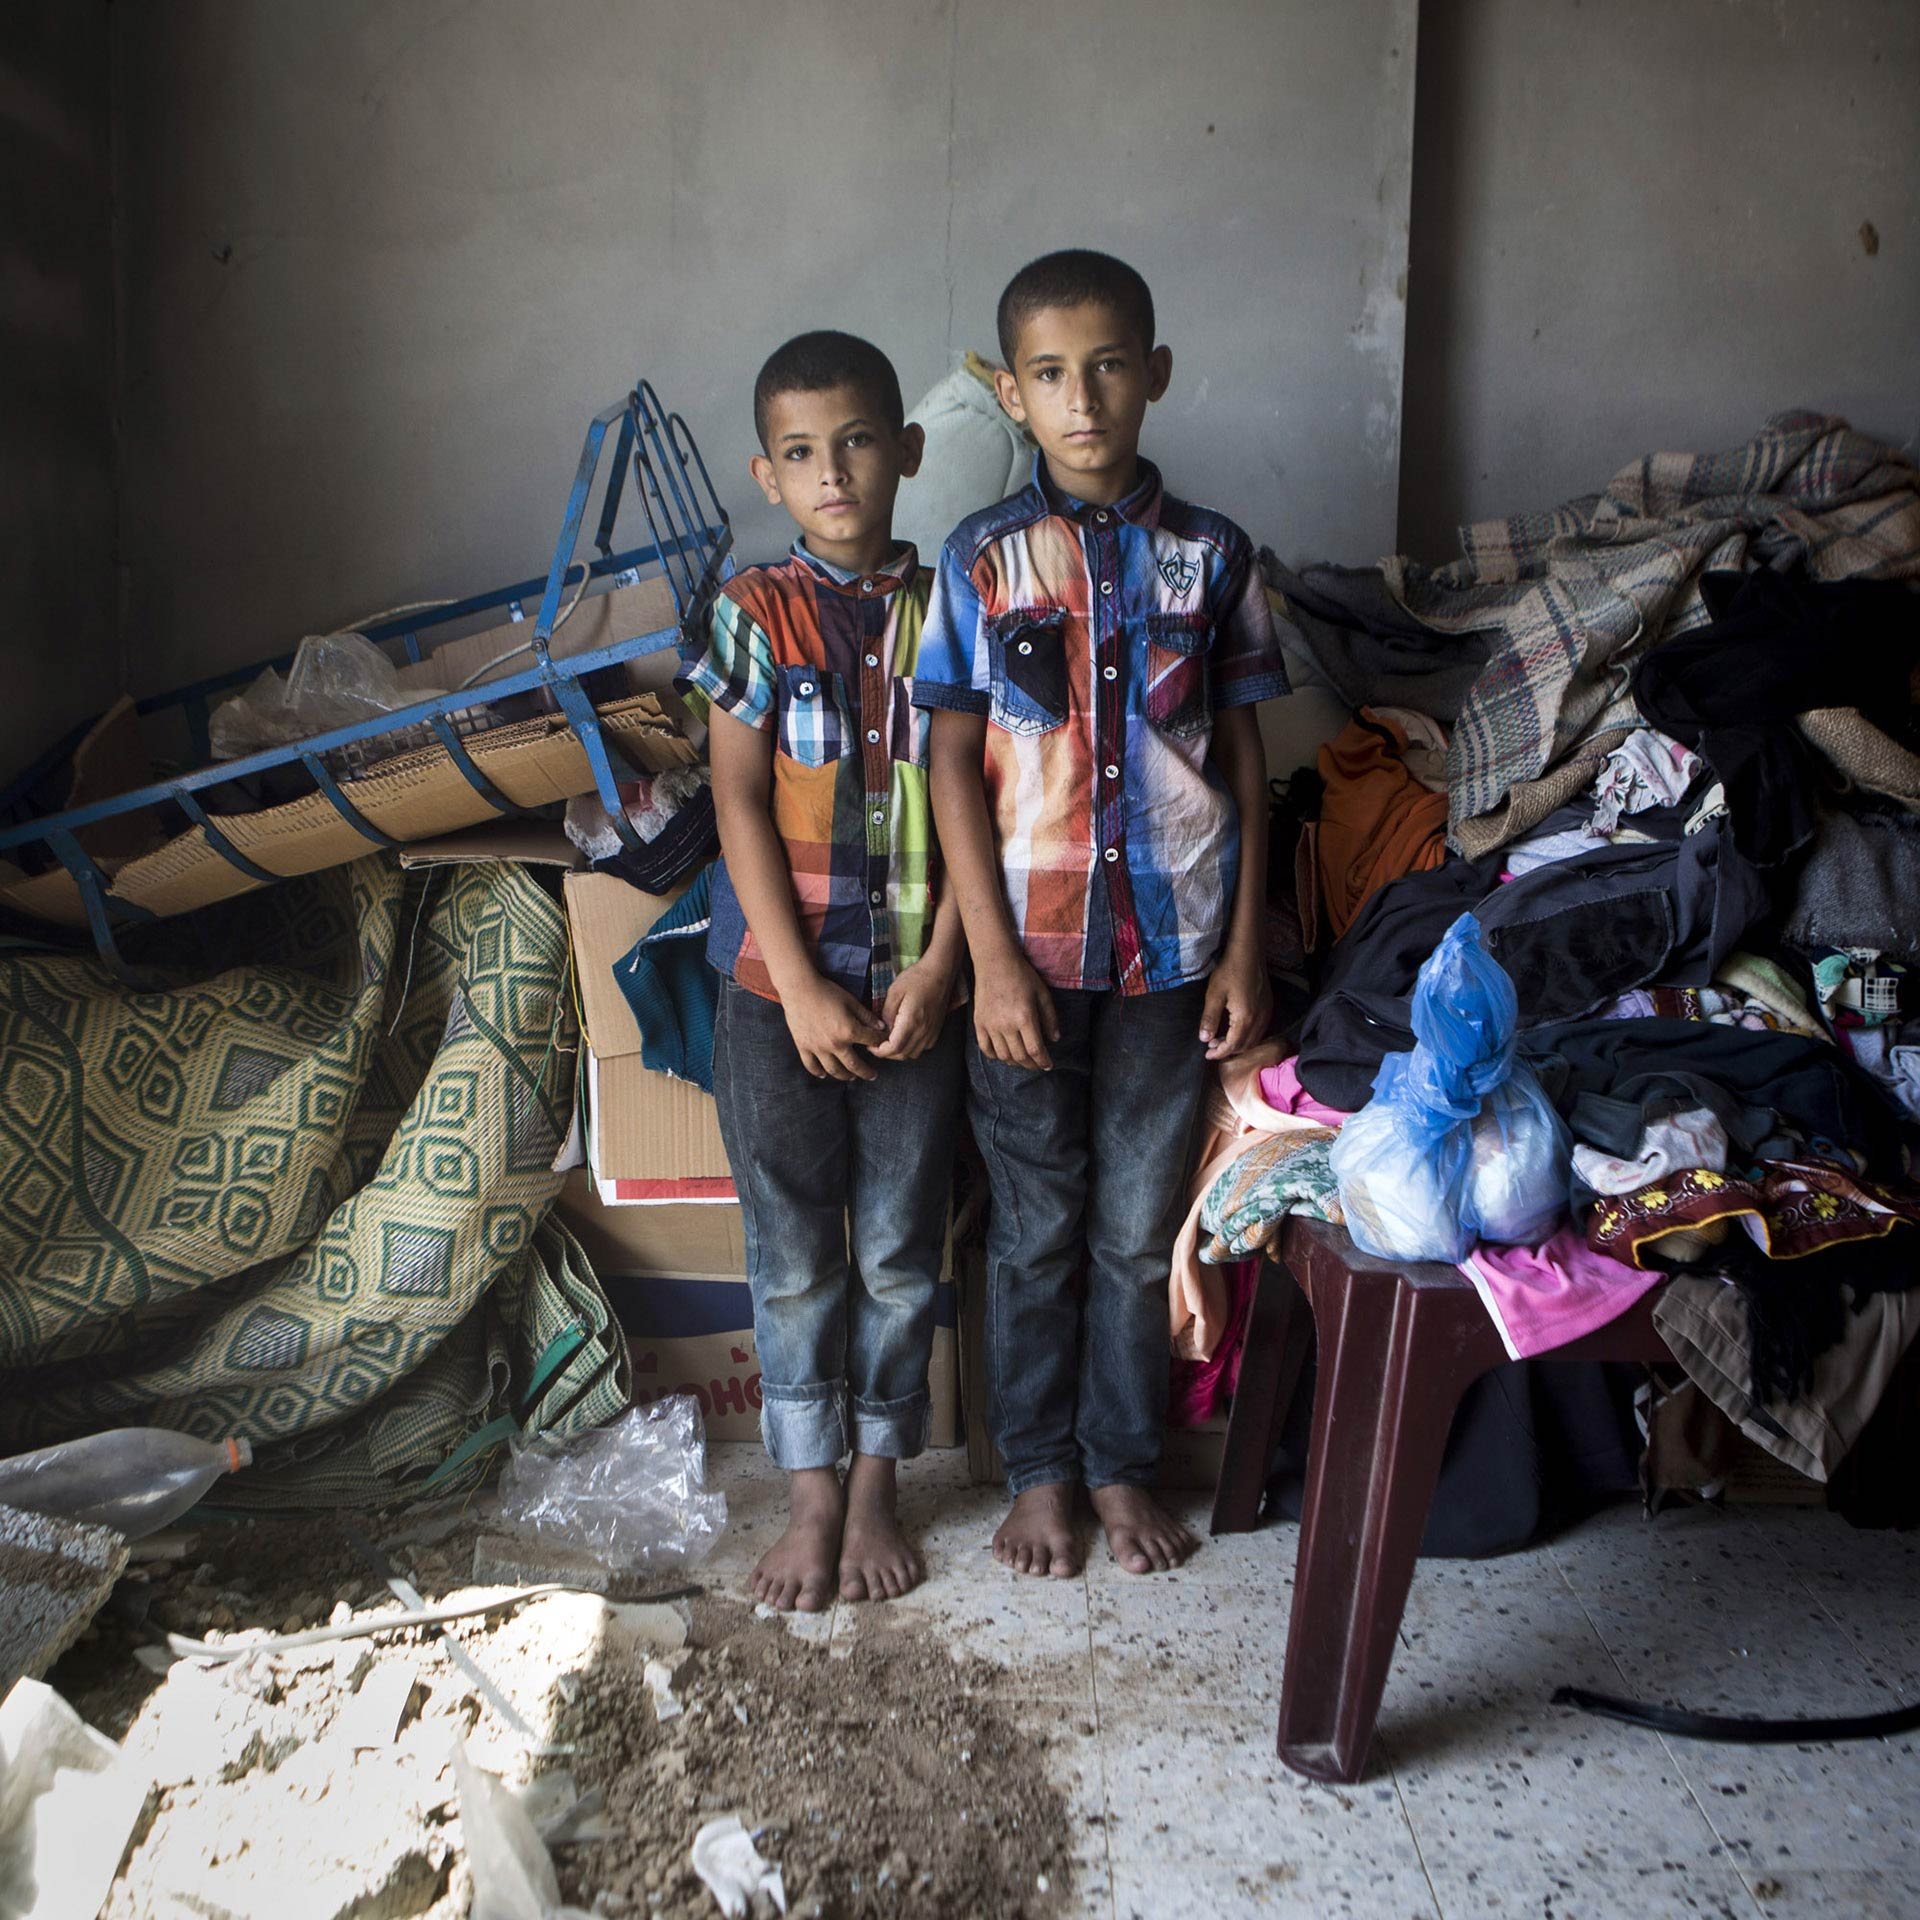 Ibrahim, the smaller of the twin brothers on the photo, says he misses his best friend, seven-year-old Maysara al-Louh. The two boys, Ibrahim and Abdallah, are standing in their destroyed bedroom, in Deir al-Balah, right in front of where the al-Louh family home used to stand. Their bedroom was damaged in the bombing that killed Maysara and seven other members of al-Louh family.